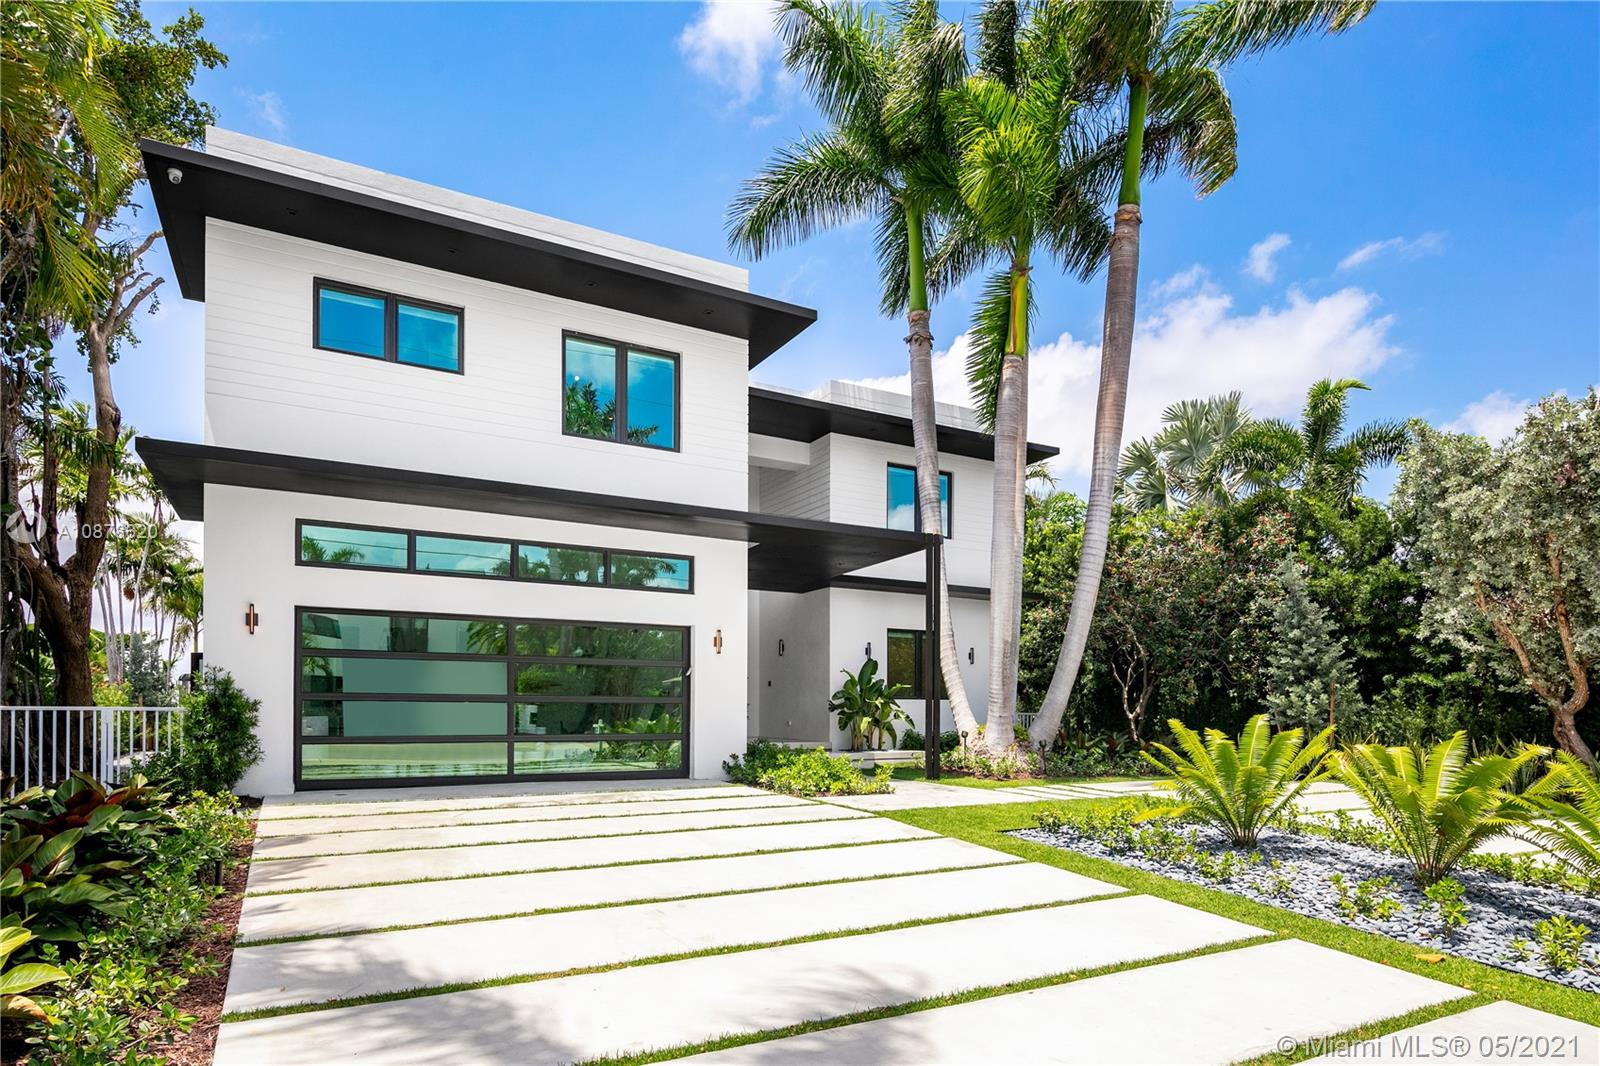 Situated on the Open Bay w/ endless water & west sunset views, this Completely Rebuilt Contemporary home features 7100 SF of Living Space complimented by top of the line finishes throughout. Enjoy a perfect layout for family living & entertainment which features 8 BD, 8.5 BA + home office. The 1st floor sets the tone w/ 60x60 porcelain tiles, one of a kind staircase w/ live green wall & a Snaidero Kitchen comprised of wood taken from the pilasters of Venice. Upstairs you'll be blown away by the master retreat which boasts breathtaking western views of the bay & sunsets, private lounge / sitting room, bespoke master bathroom w/ steam shower & enormous his & hers closets. The backyard provides a tropical setting w/ pool & spa, new seawall cap & brand new 60' dock.